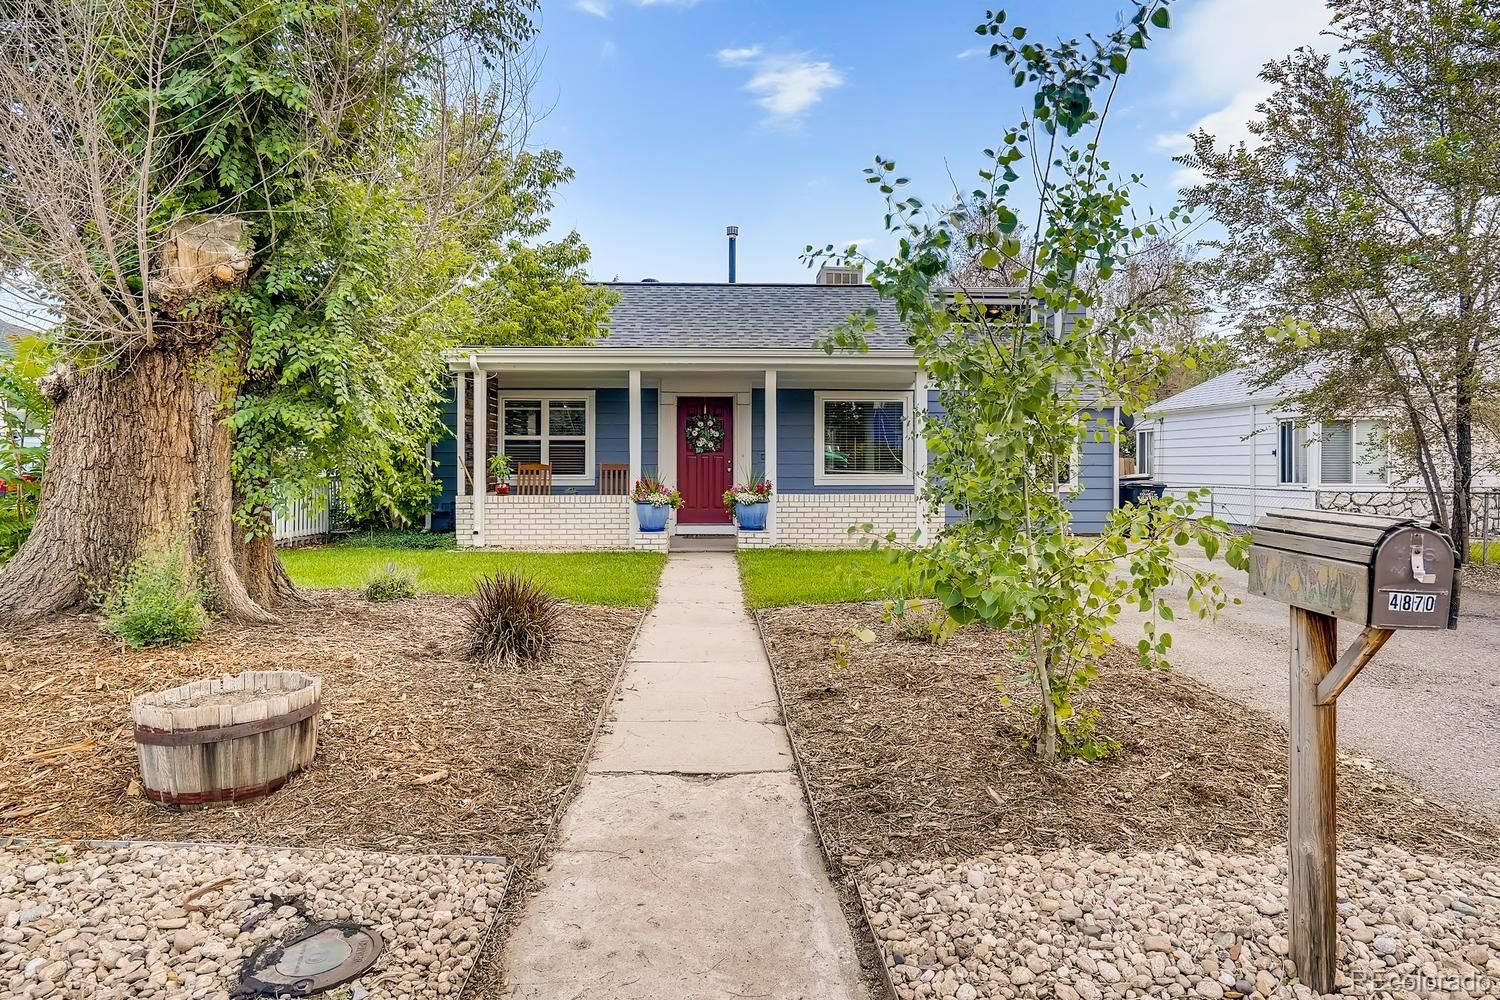 4870 Decatur Street, Denver, CO 80221 - #: 5098006